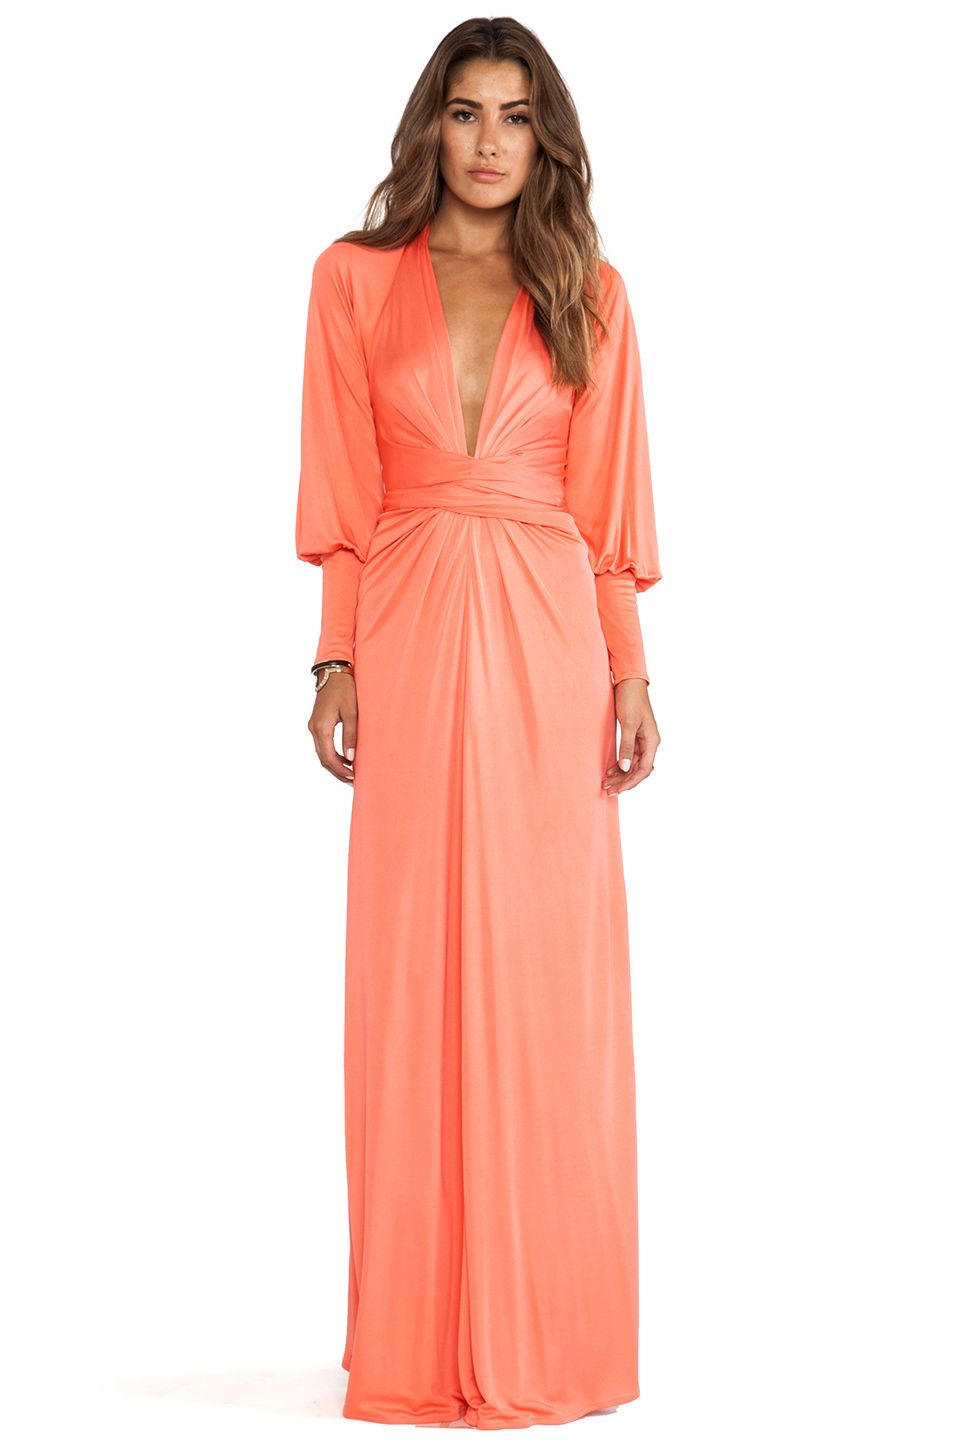 Issa Long Sleeve Wrap Maxi Dress in Coral | For The Wife ...